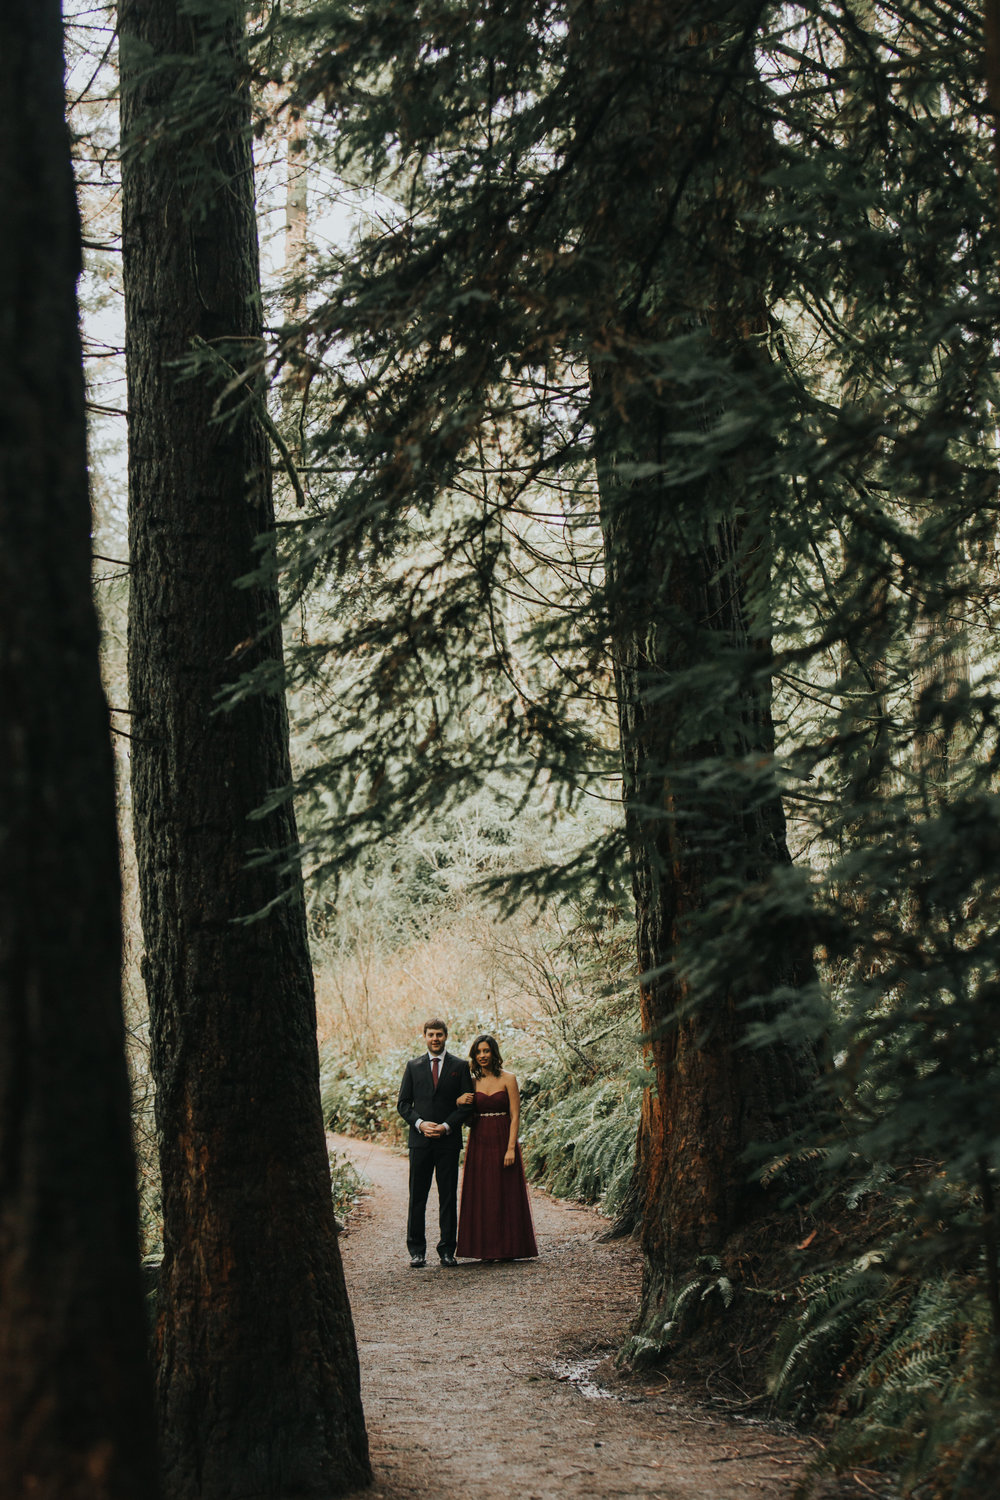 Hoyt Arboretum Wedding Photgraphers-4.jpg